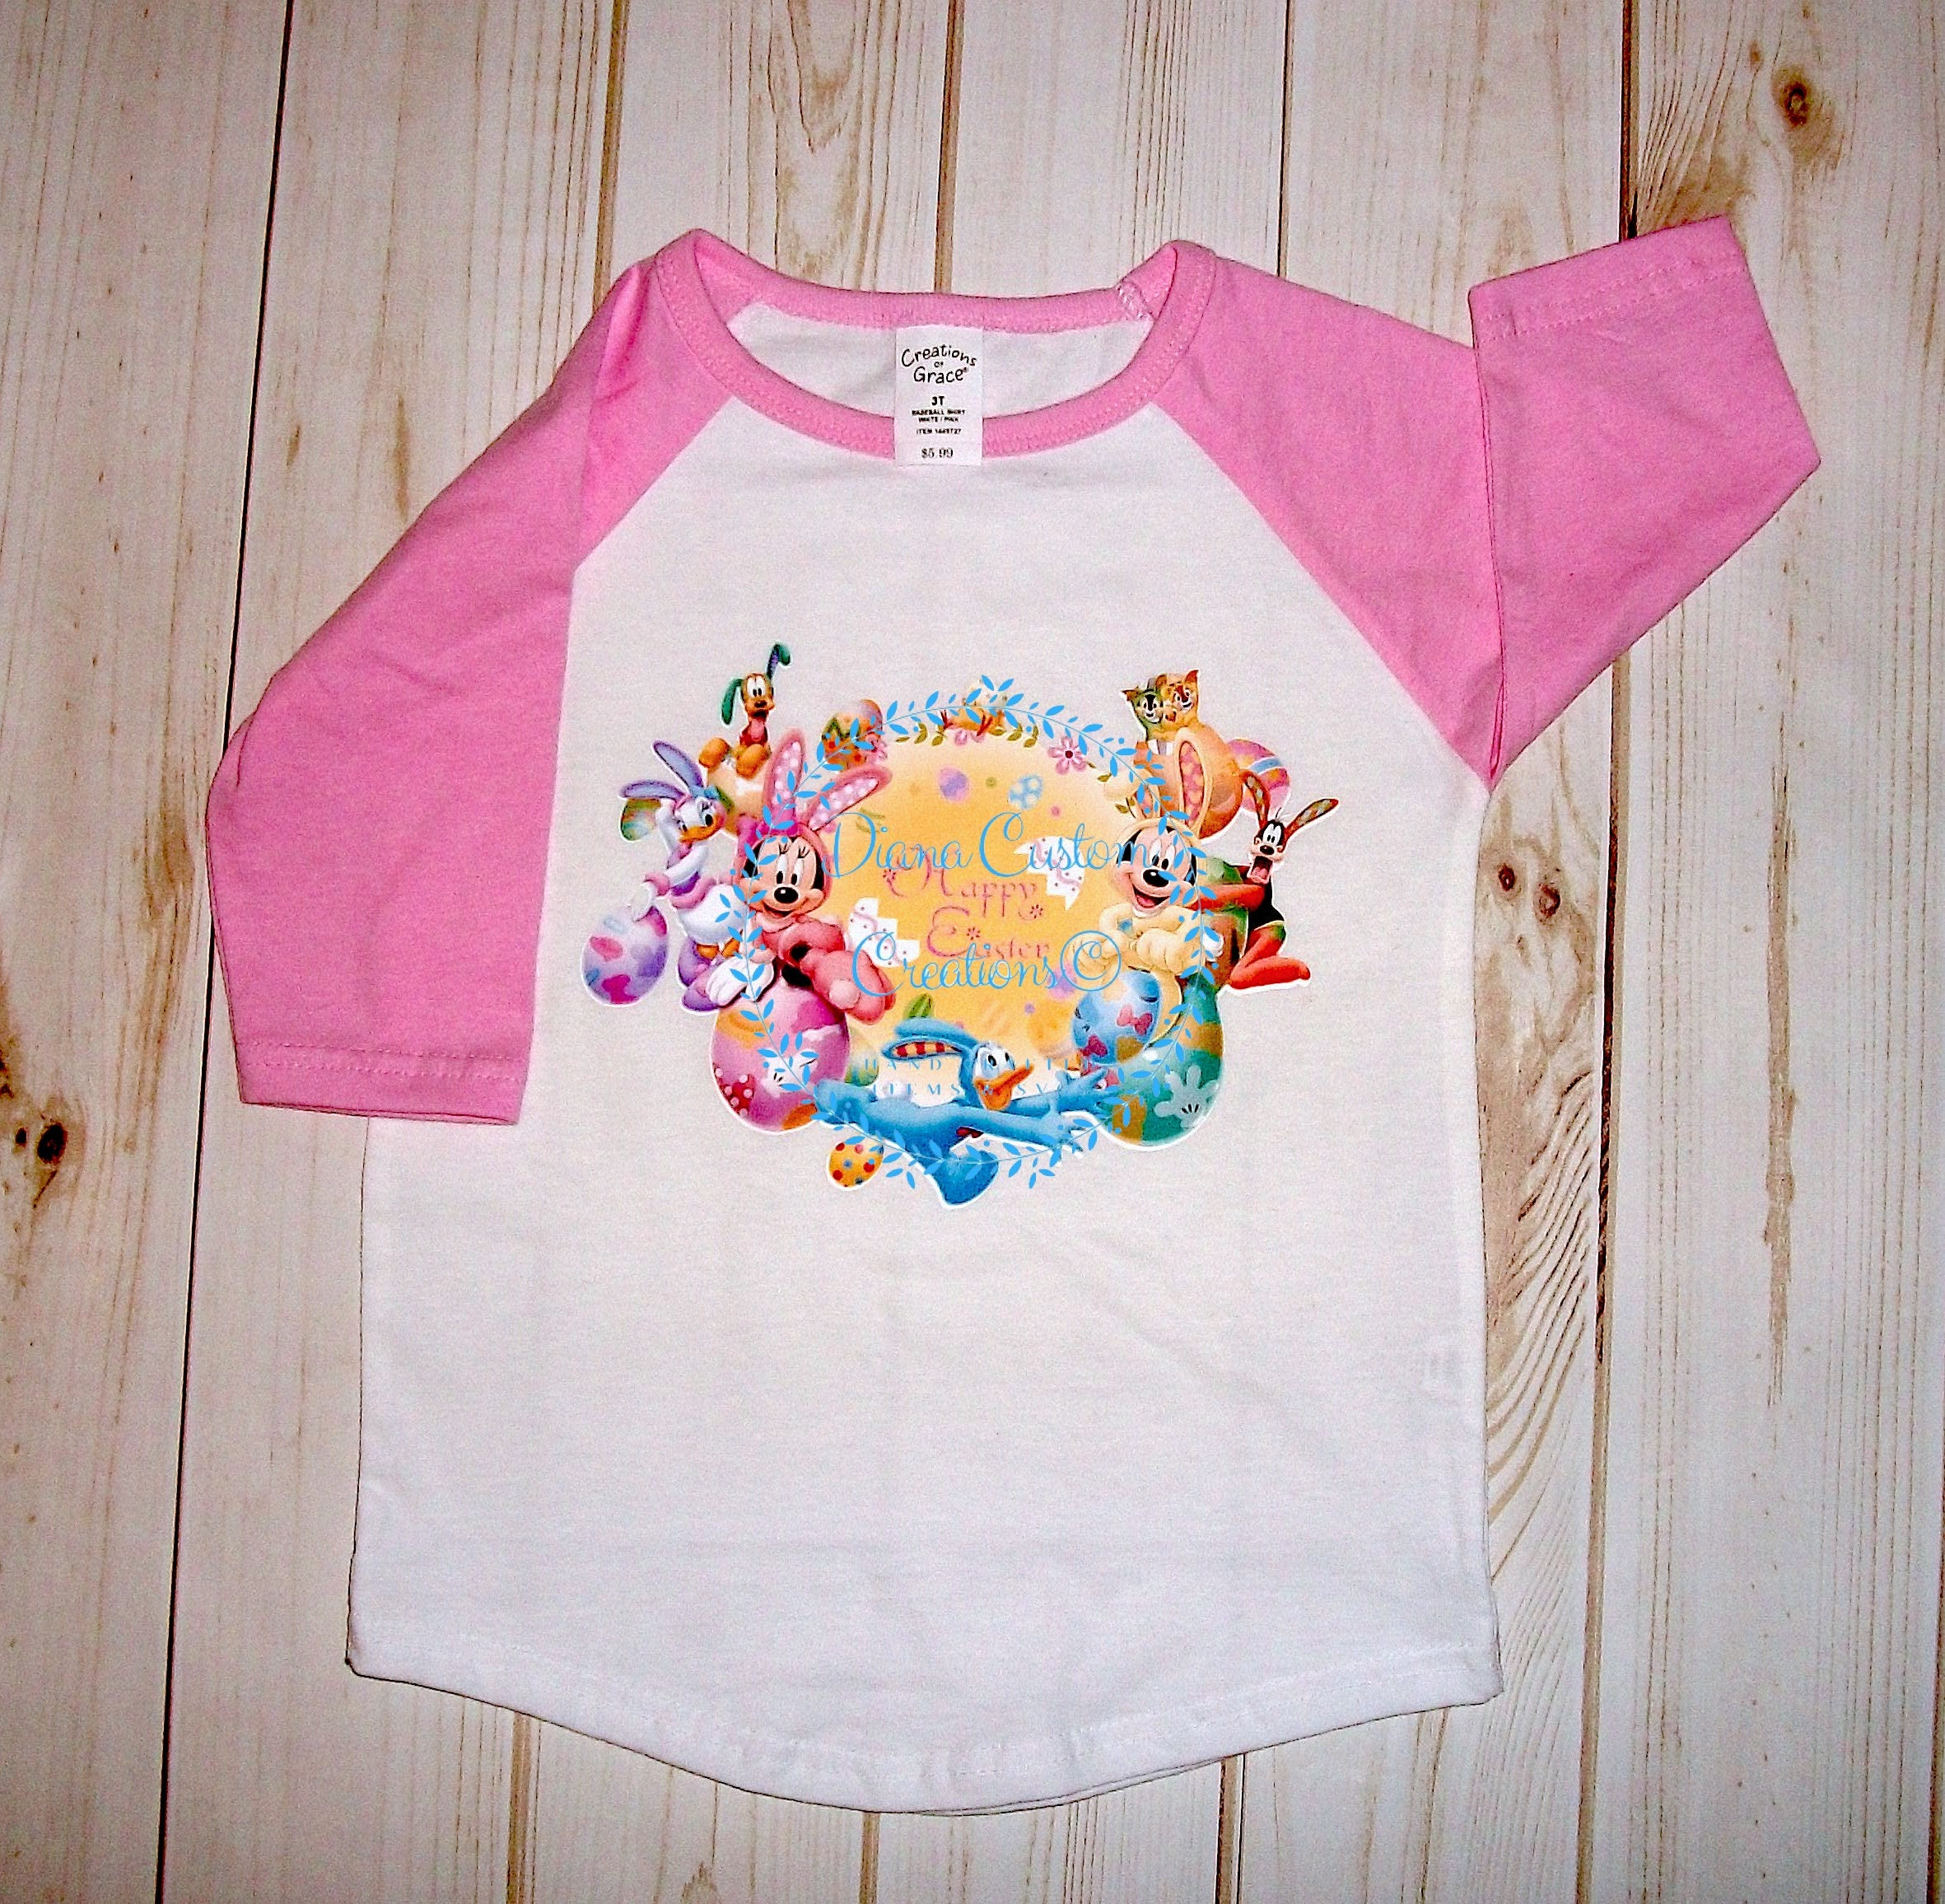 697d3010 Disney Shirt, Easter Shirt, Disney Easter, Mickey Mouse, Minnie Mouse, Donald  Duck, Daisy Duck, Pluto, Goofy, Mickey Easter, Minnie Easter